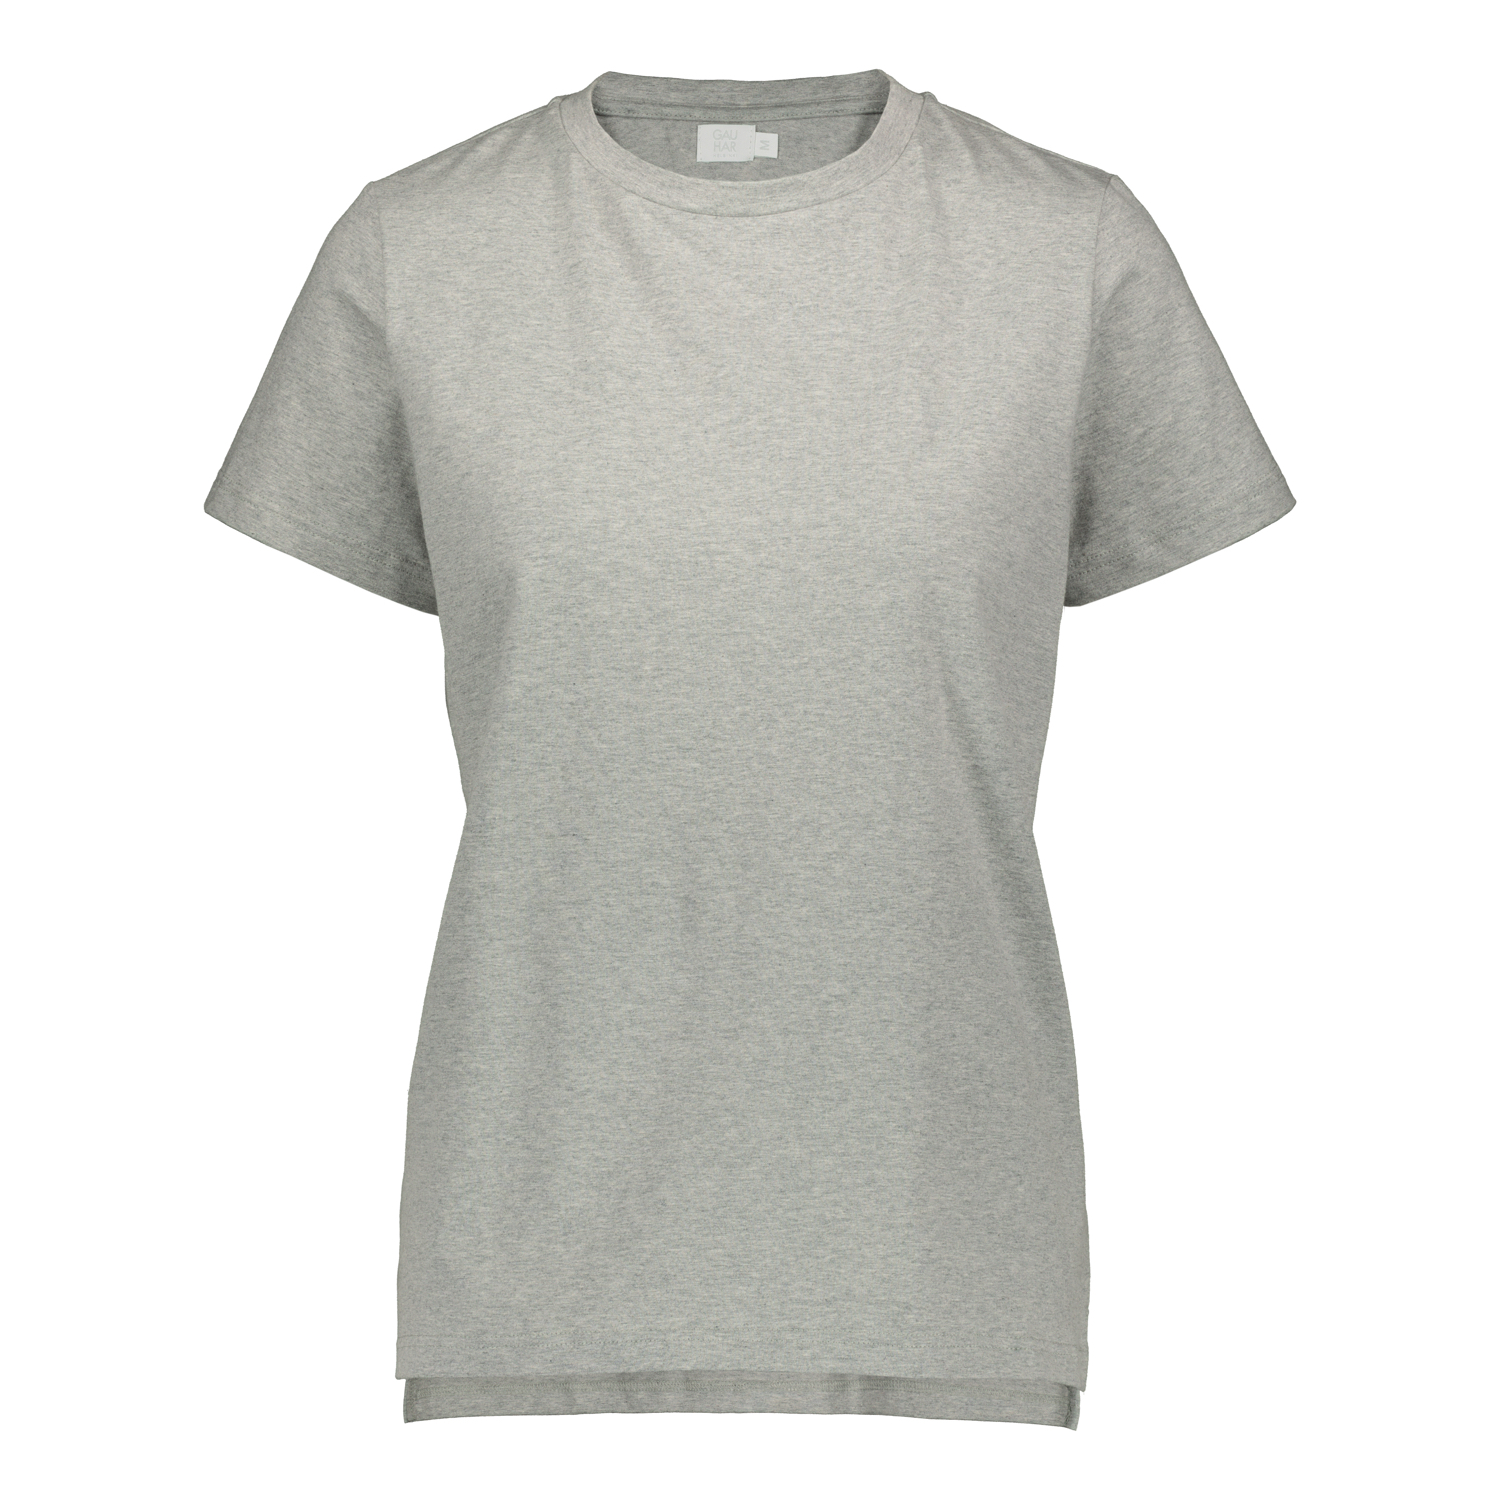 T-SHIRT GREY MELANGE M